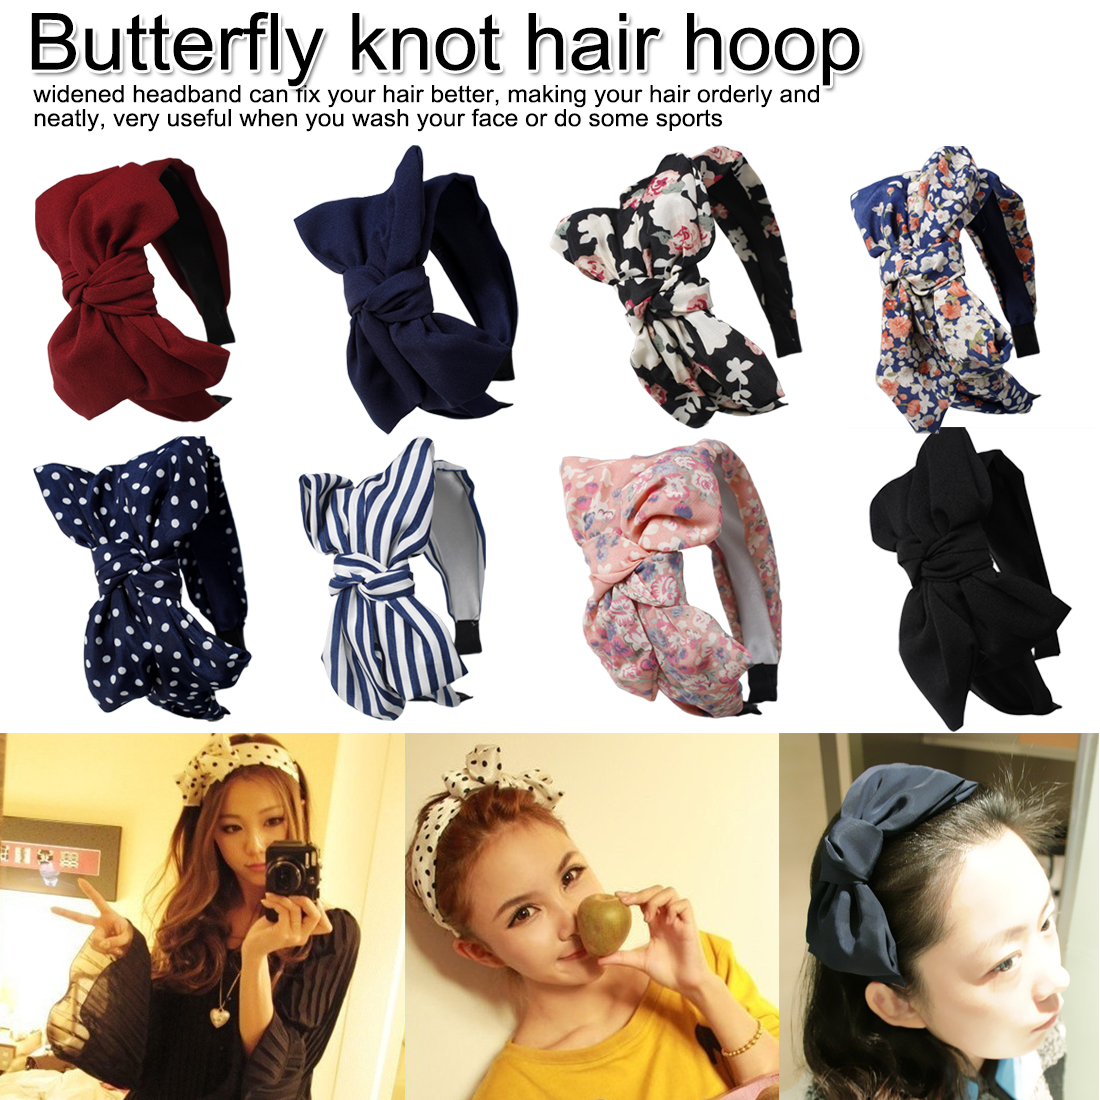 Women Headband Twist Hairband Bow Knot Cross Tie Cloth Head wrap Girls Hair Band Hoop Knitted Wide-brimmed  hair hoop